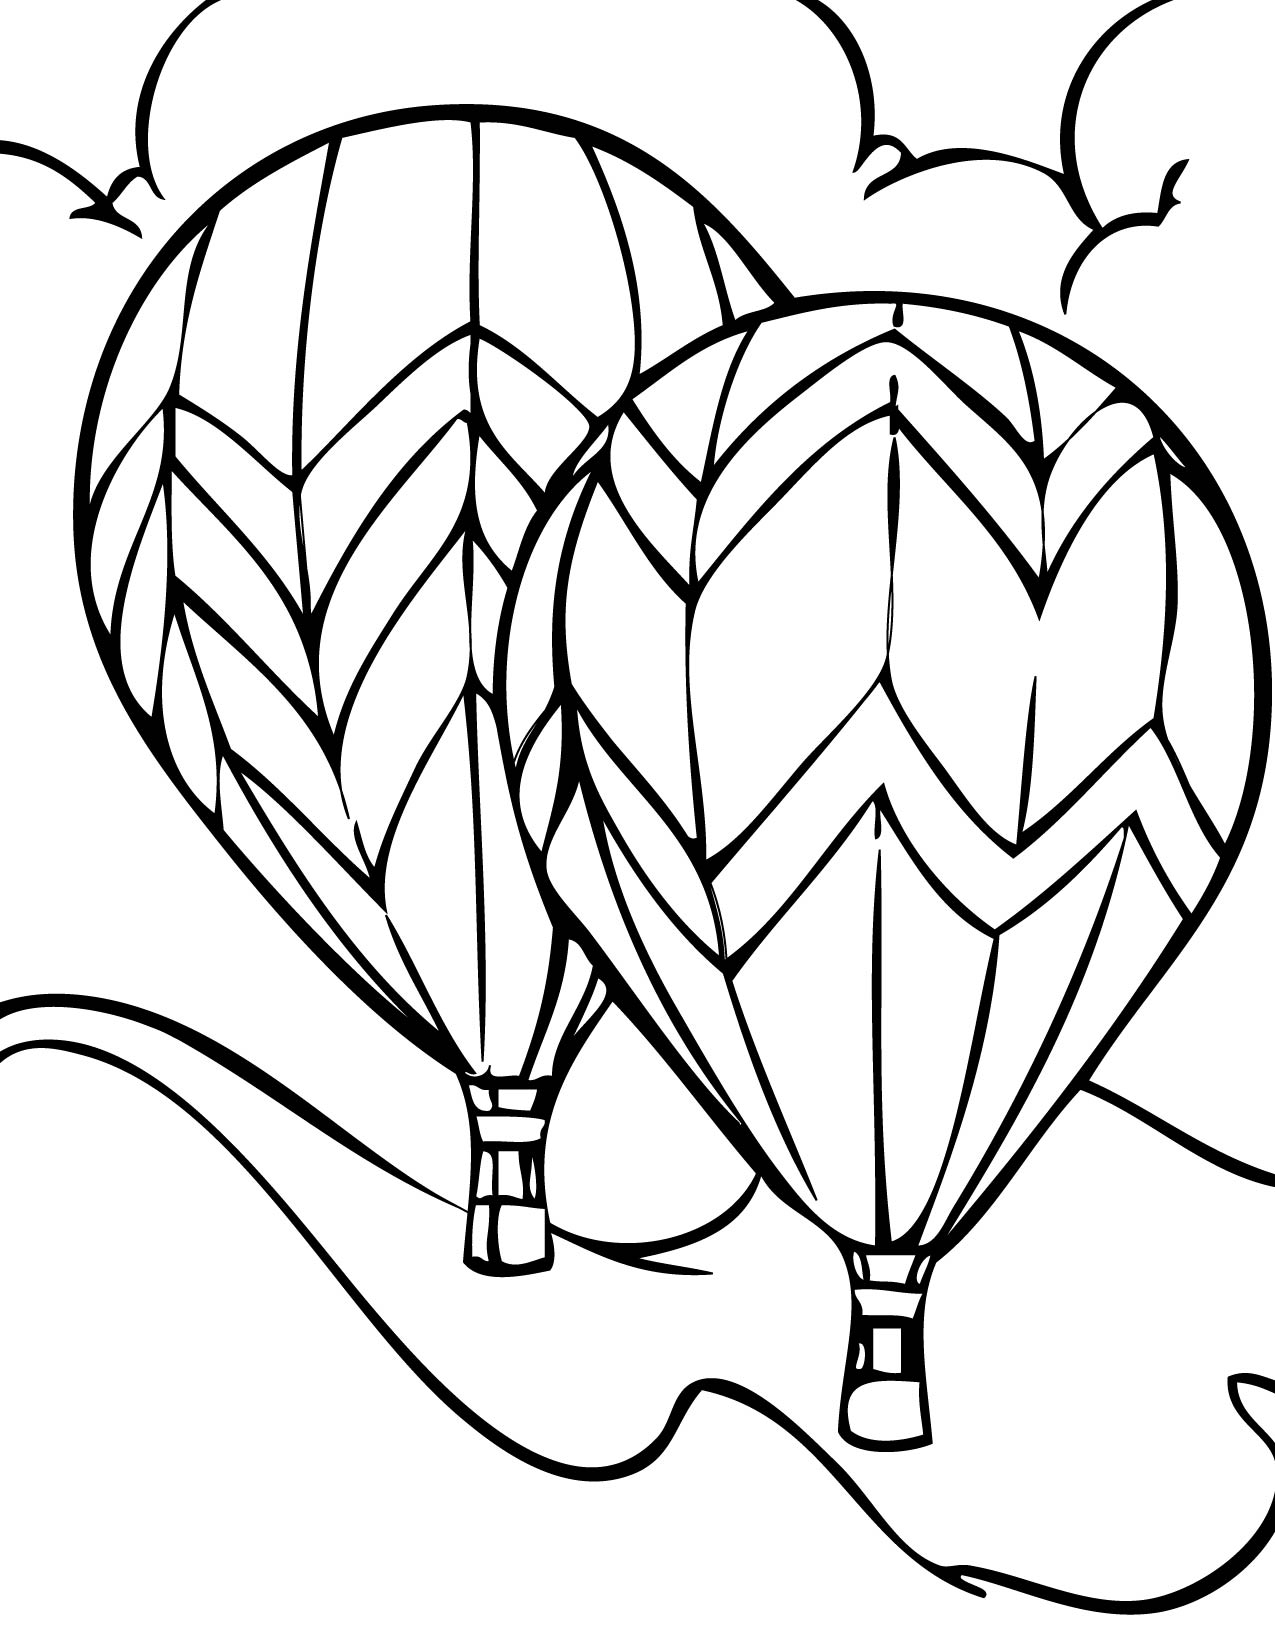 Clip Art Hot Air Balloon Color Page free printable hot air balloon coloring pages for kids images